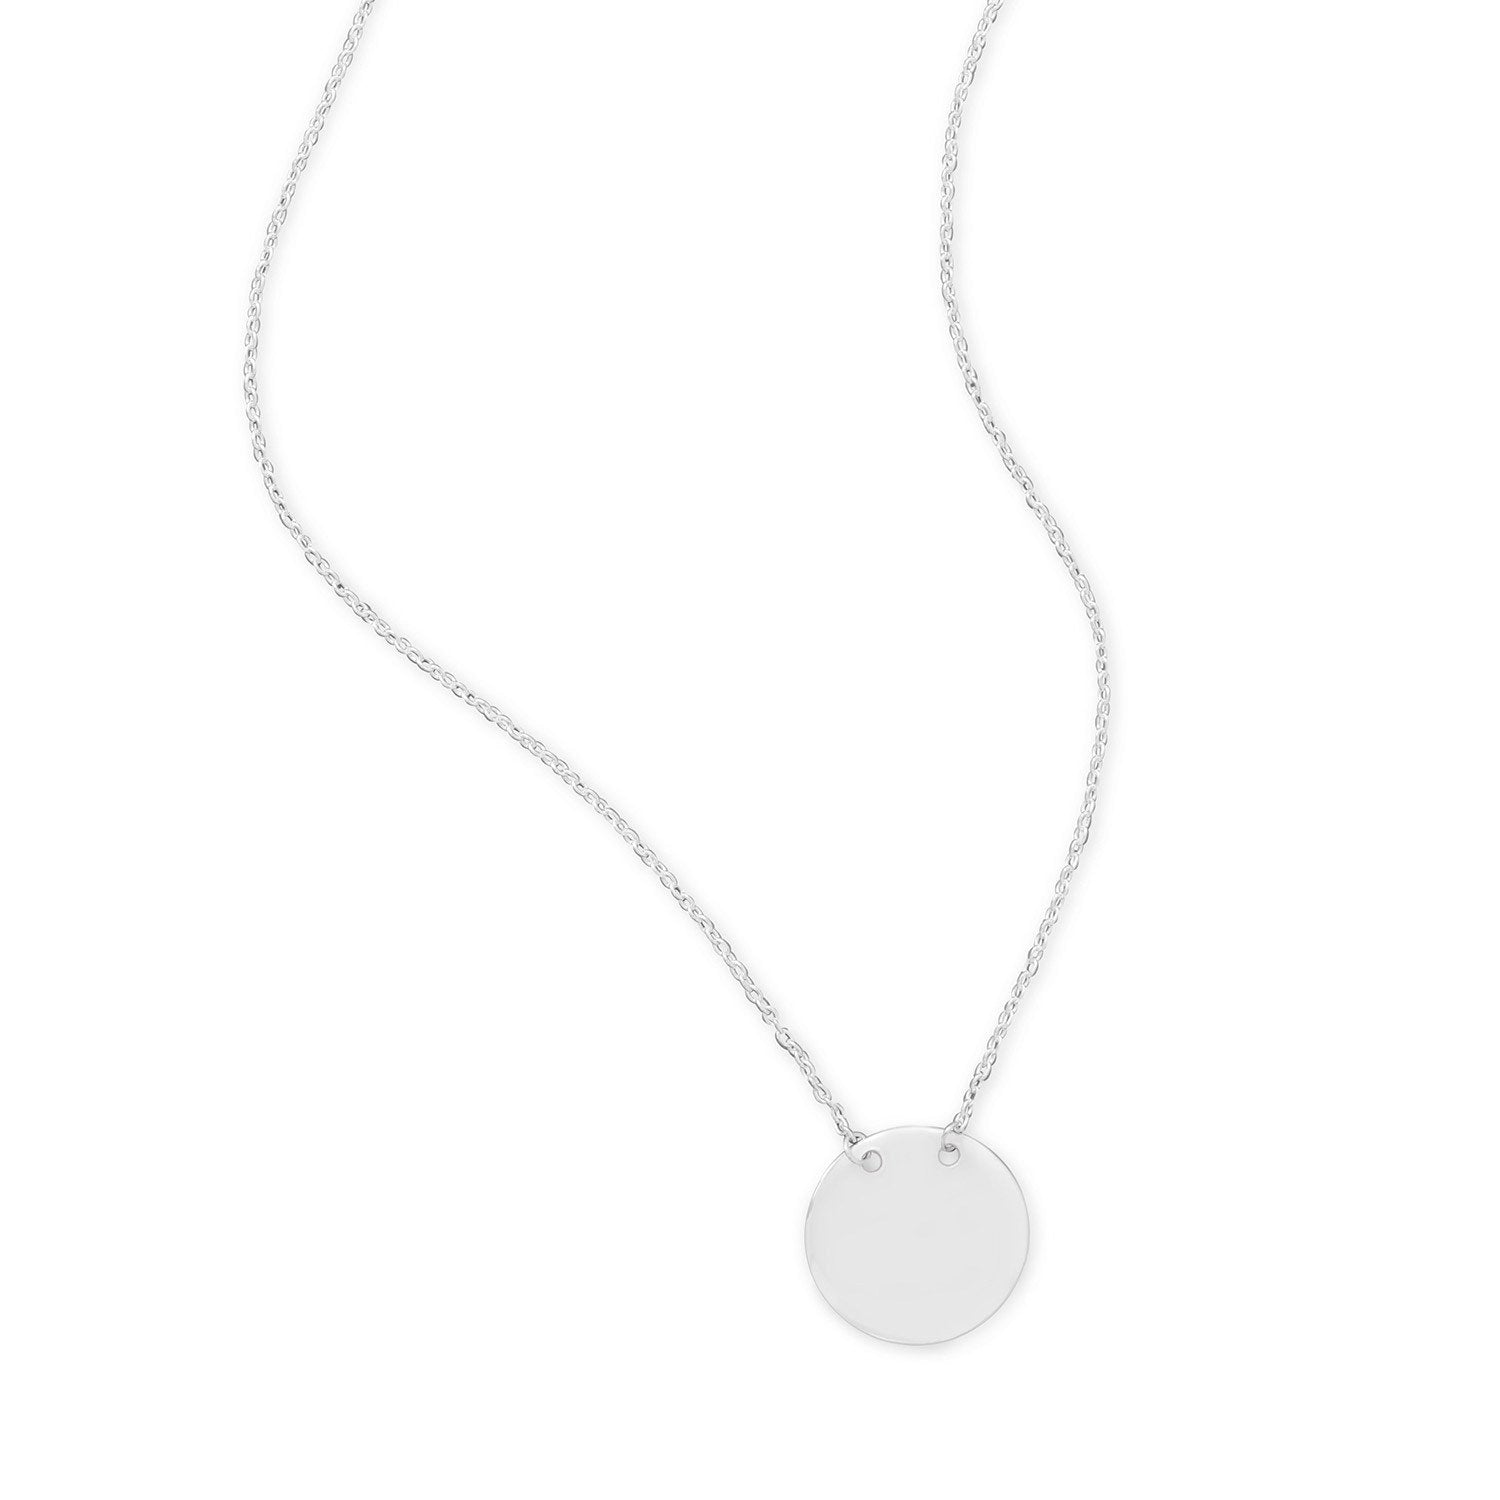 Polished Round Engravable Disk Necklace - the-southern-magnolia-too